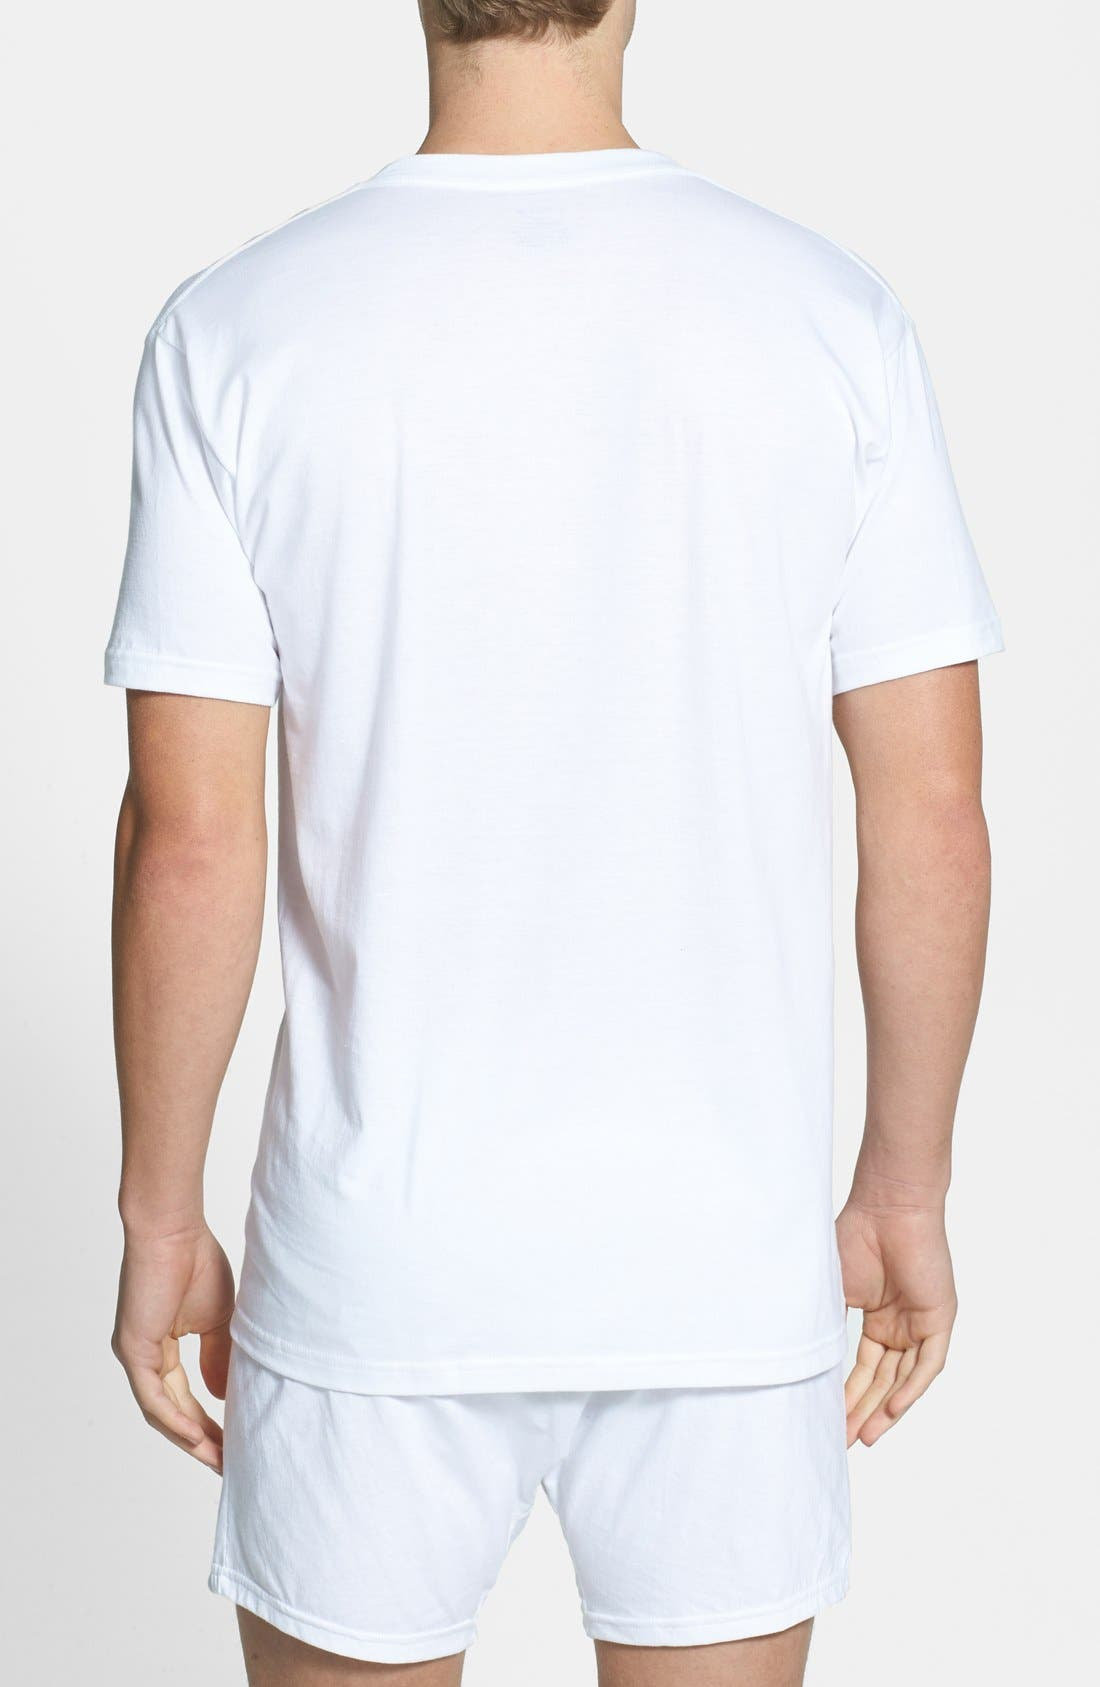 4-Pack Regular Fit Supima<sup>®</sup> Cotton V-Neck T-Shirts,                             Alternate thumbnail 8, color,                             WHITE